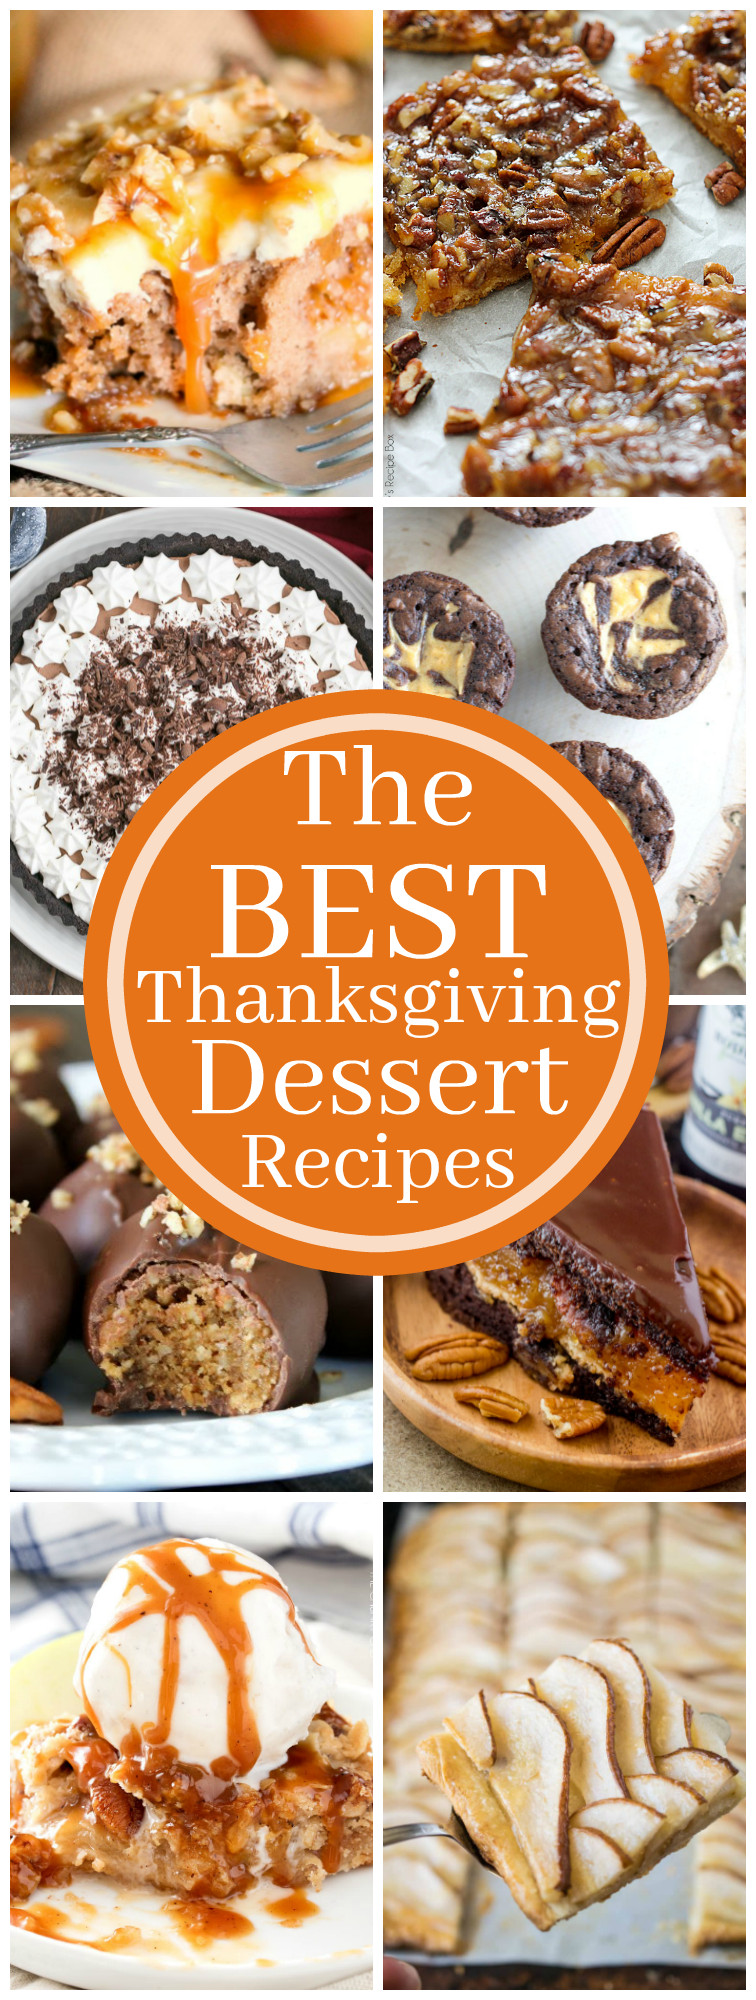 Favorite Thanksgiving Desserts  The Best Thanksgiving Dessert Recipes The Chunky Chef